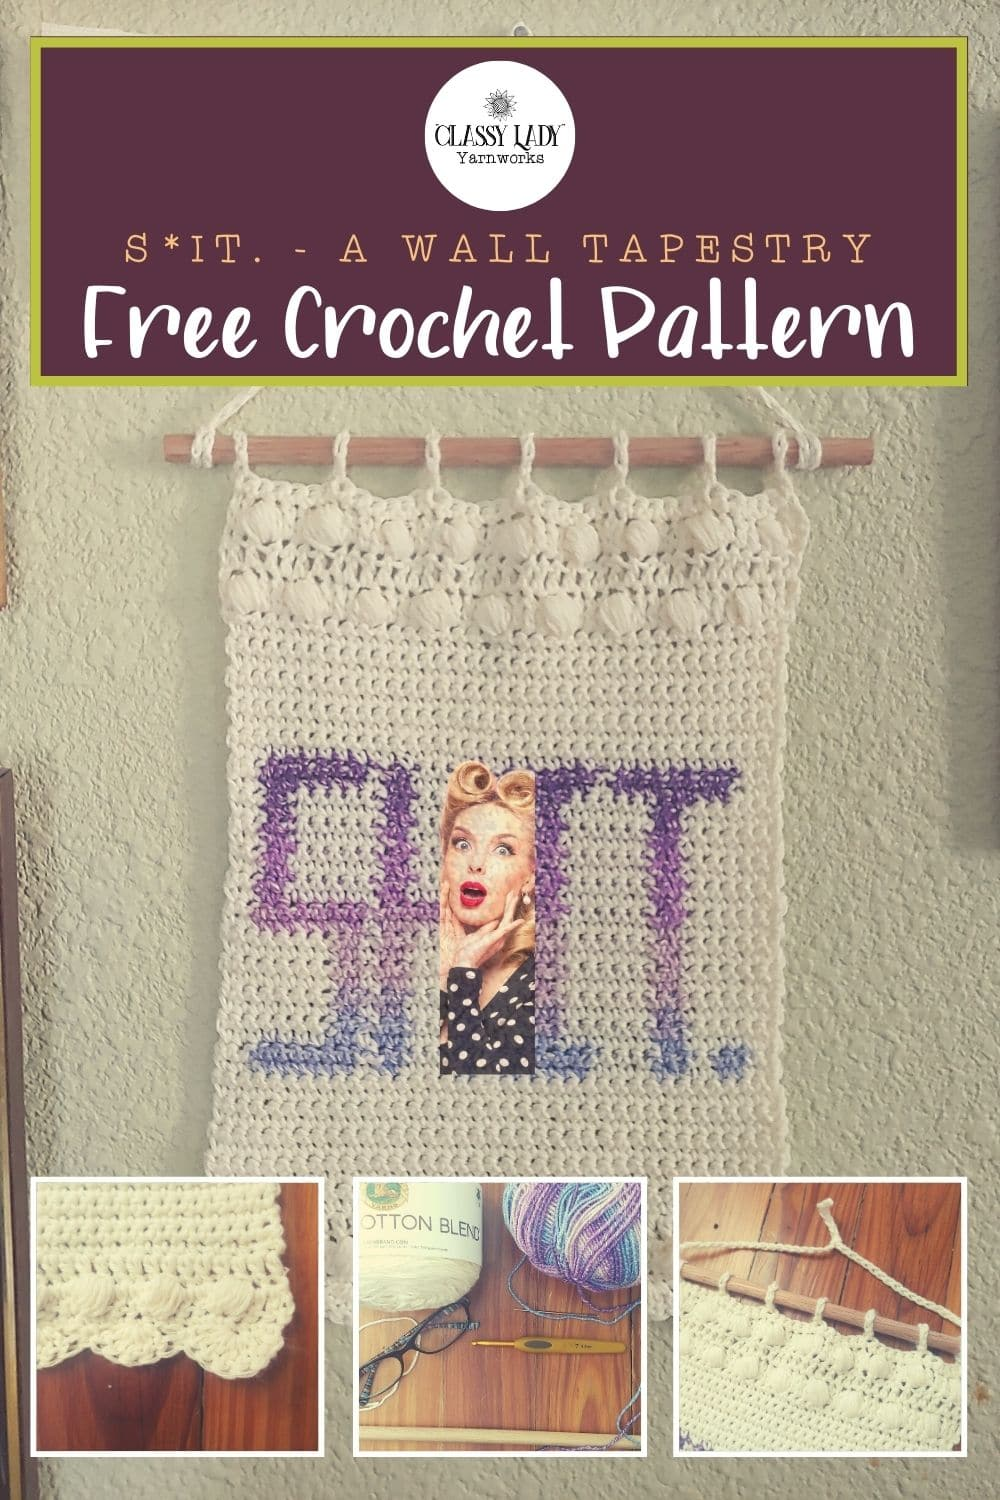 """Crocheted wall art that says """"Shit."""" Represents a crochet pattern that is available from Classy Lady Yarnworks"""